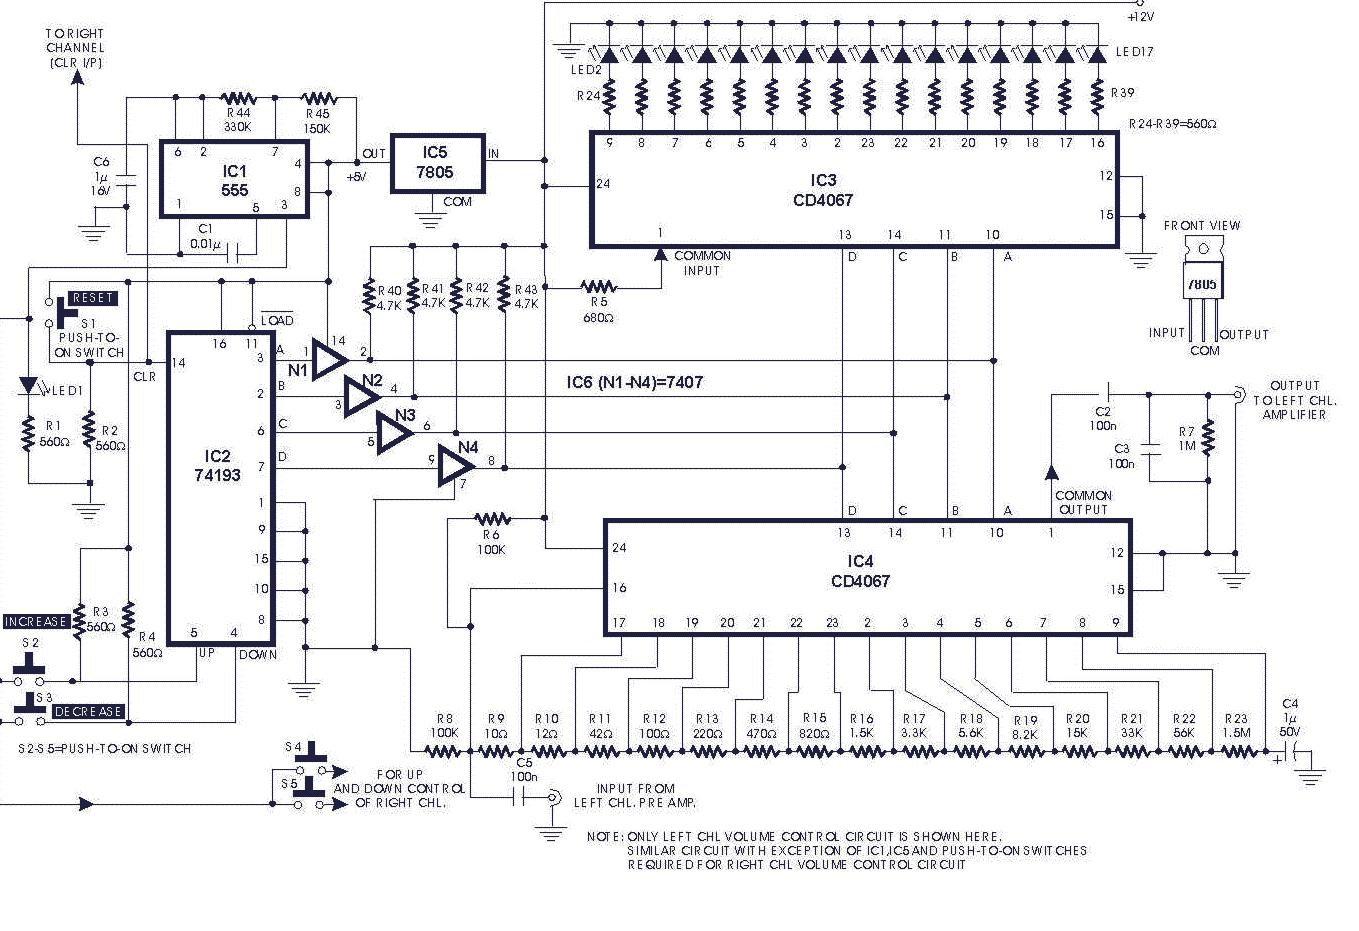 Digital Volume Control Circuit Diagrams Schematics Electronic Projects Diagram